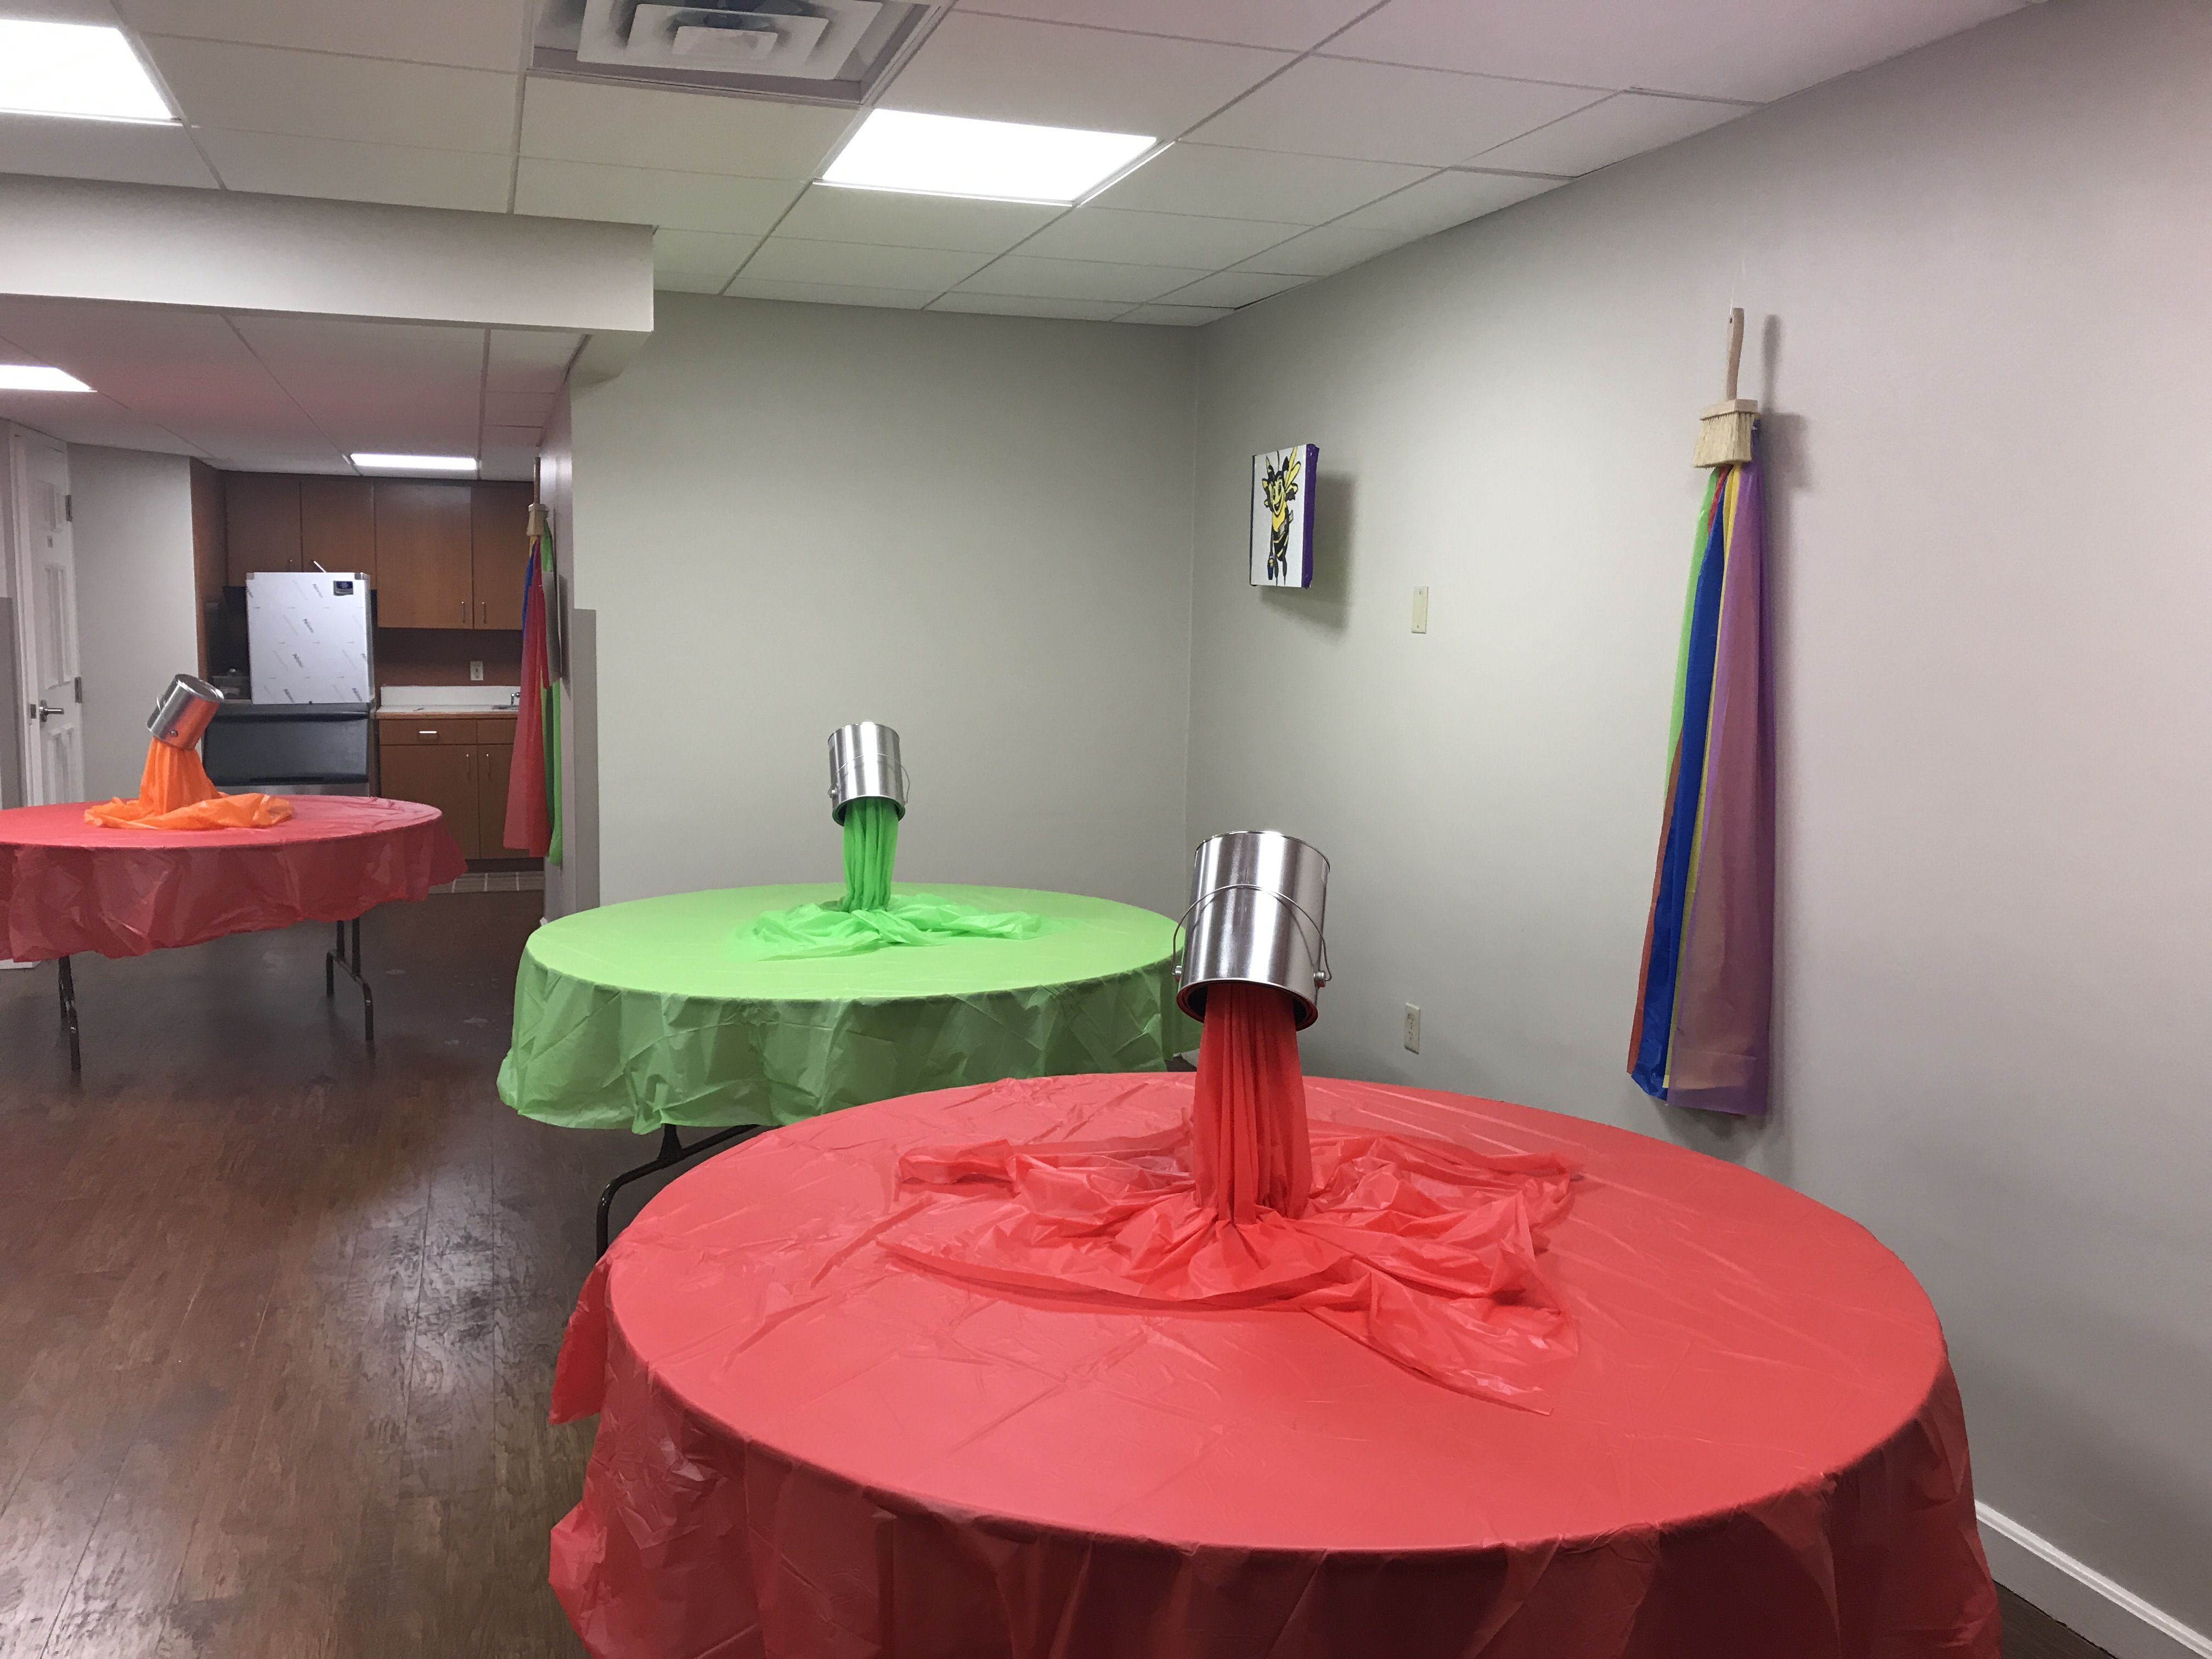 1679 best images about VBS on Pinterest   Hallways, Vacation bible ...